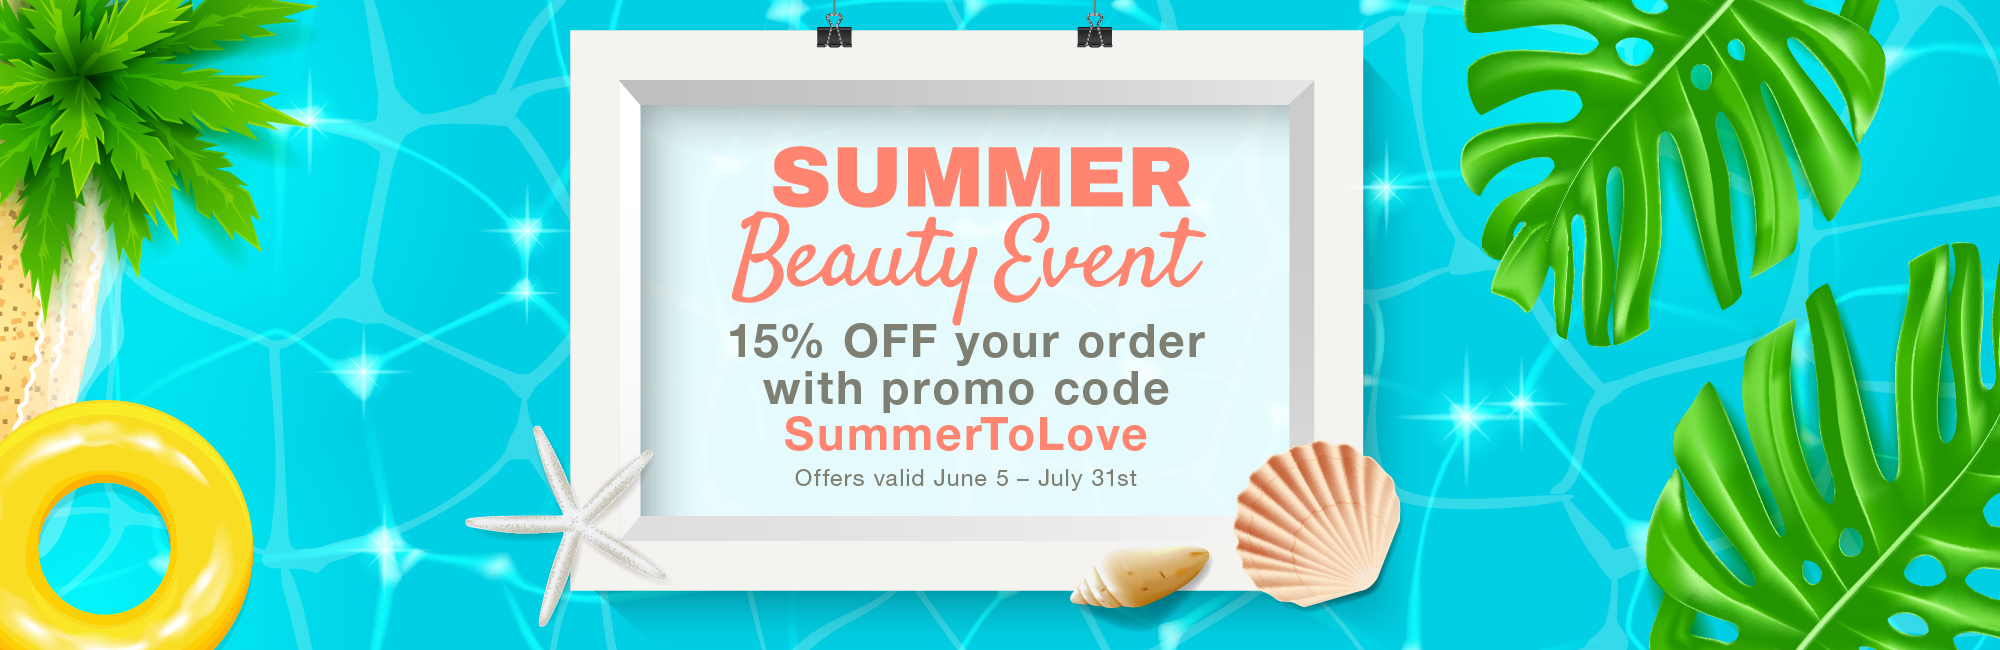 MSS-Summer-Sale_15OFF-Promo2000x650